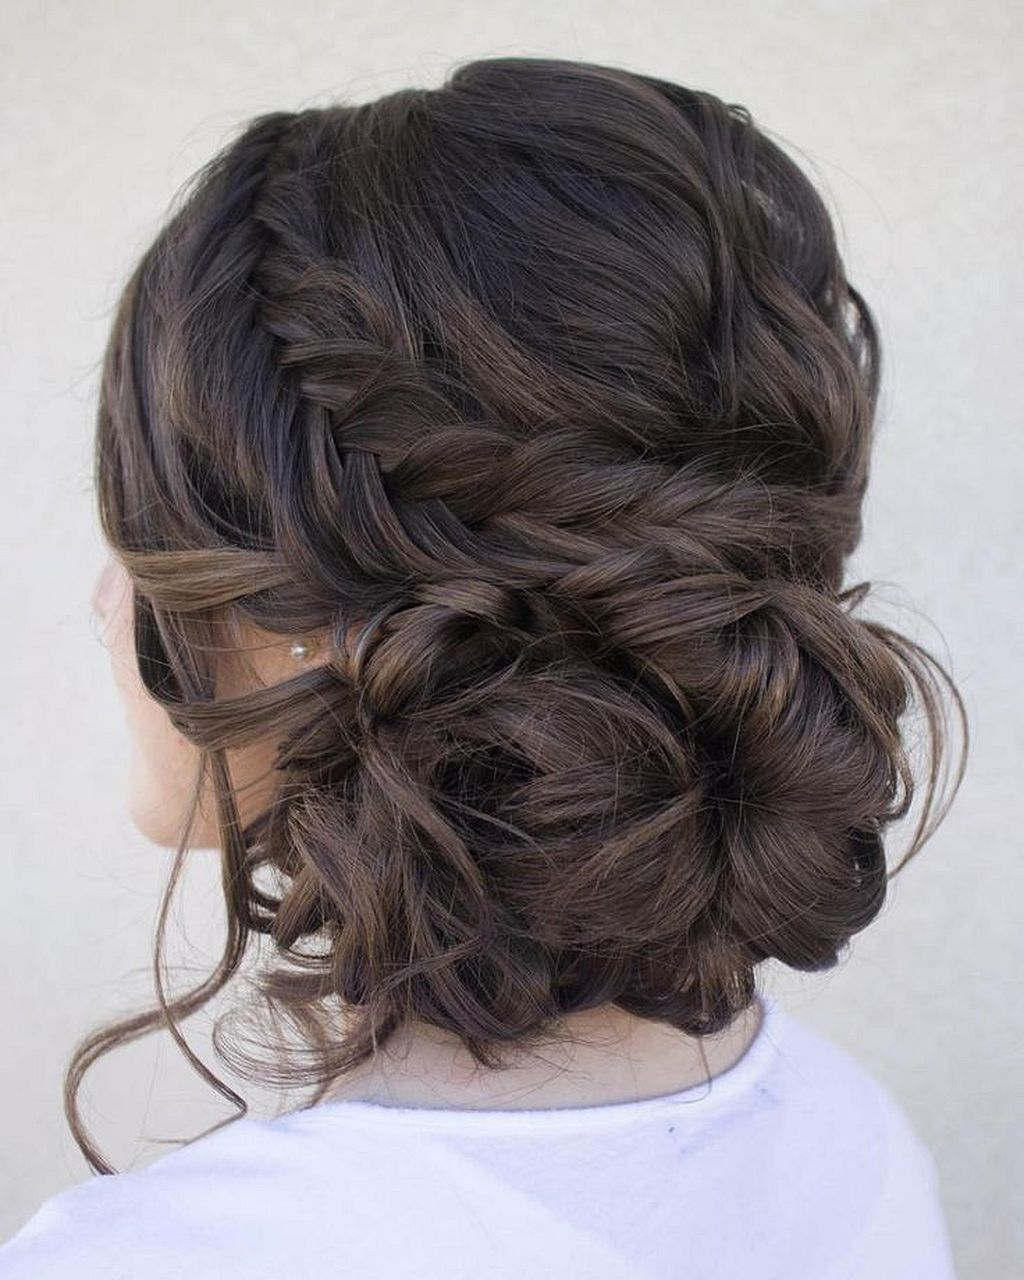 perfect prom updo wedding hairstyle inspiration prom updo updo